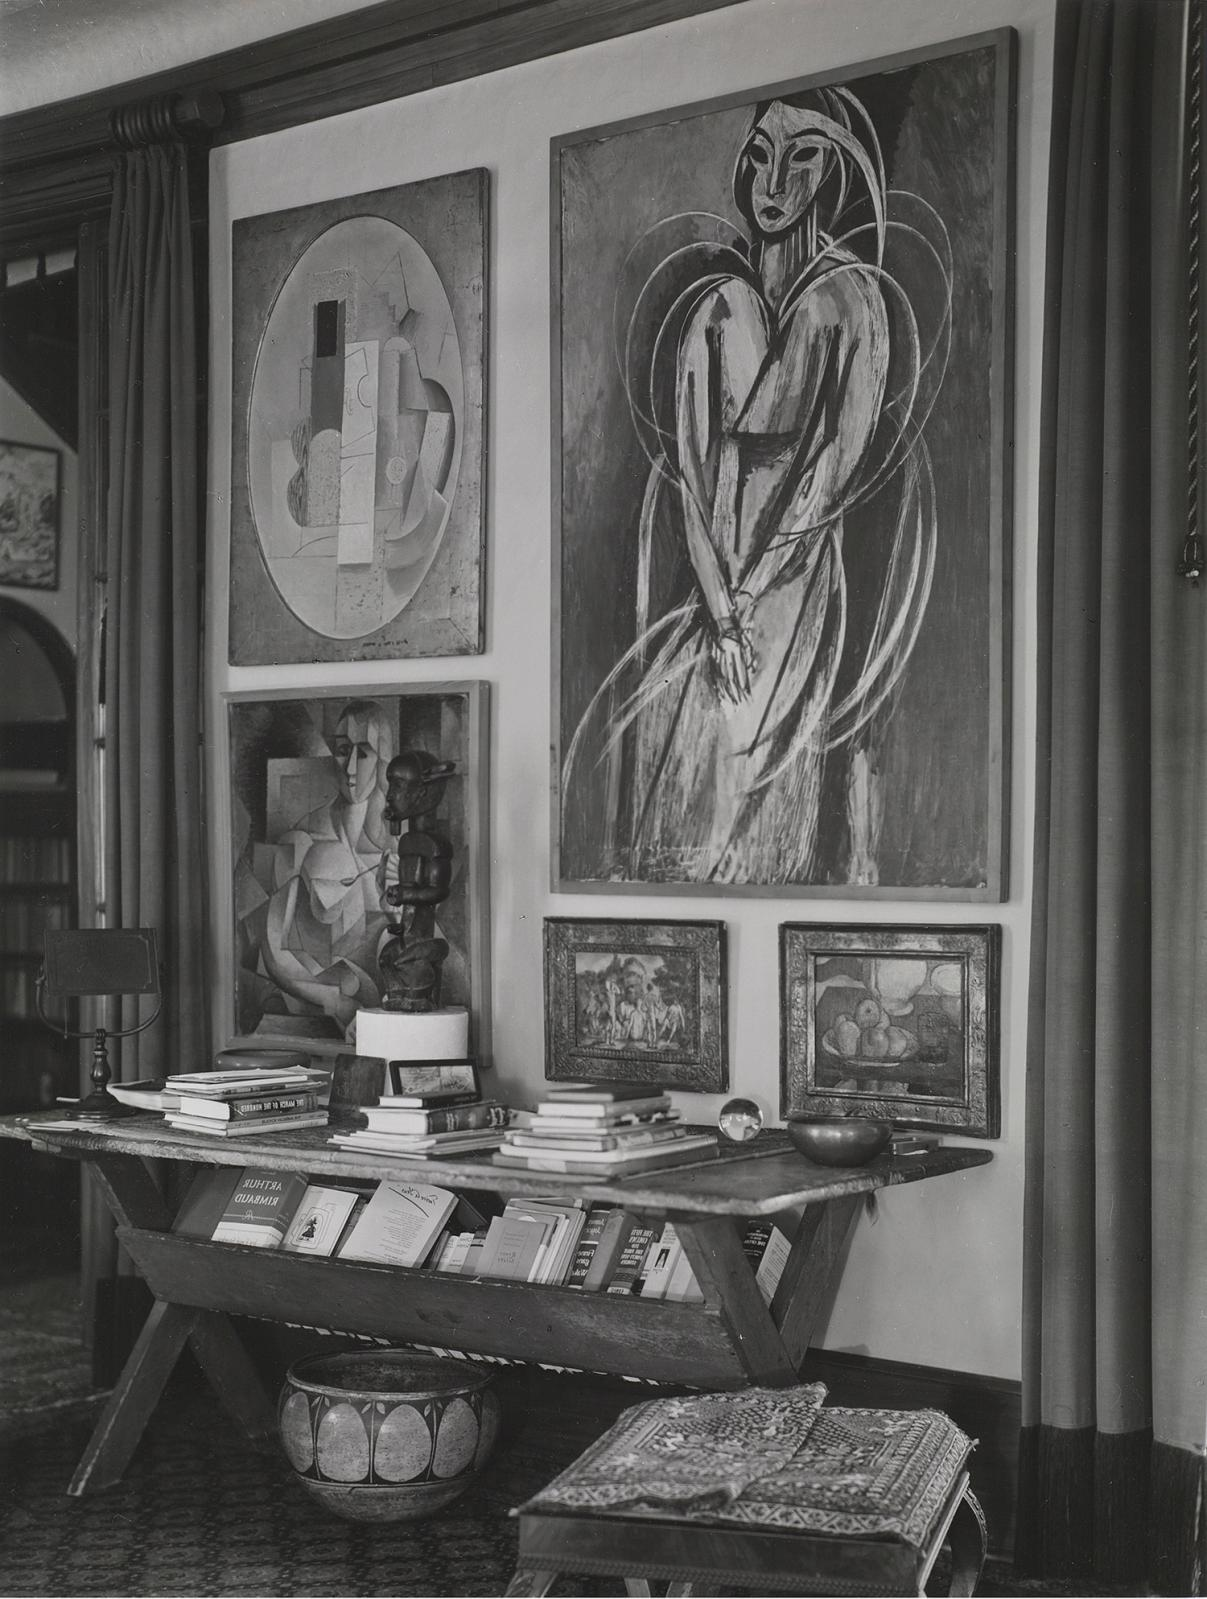 Photograph by Charles Sheeler. Living room of Louise and Walter Arensberg's house, 7065 Hillside Avenue, Los Angeles, October, 1939 (detai